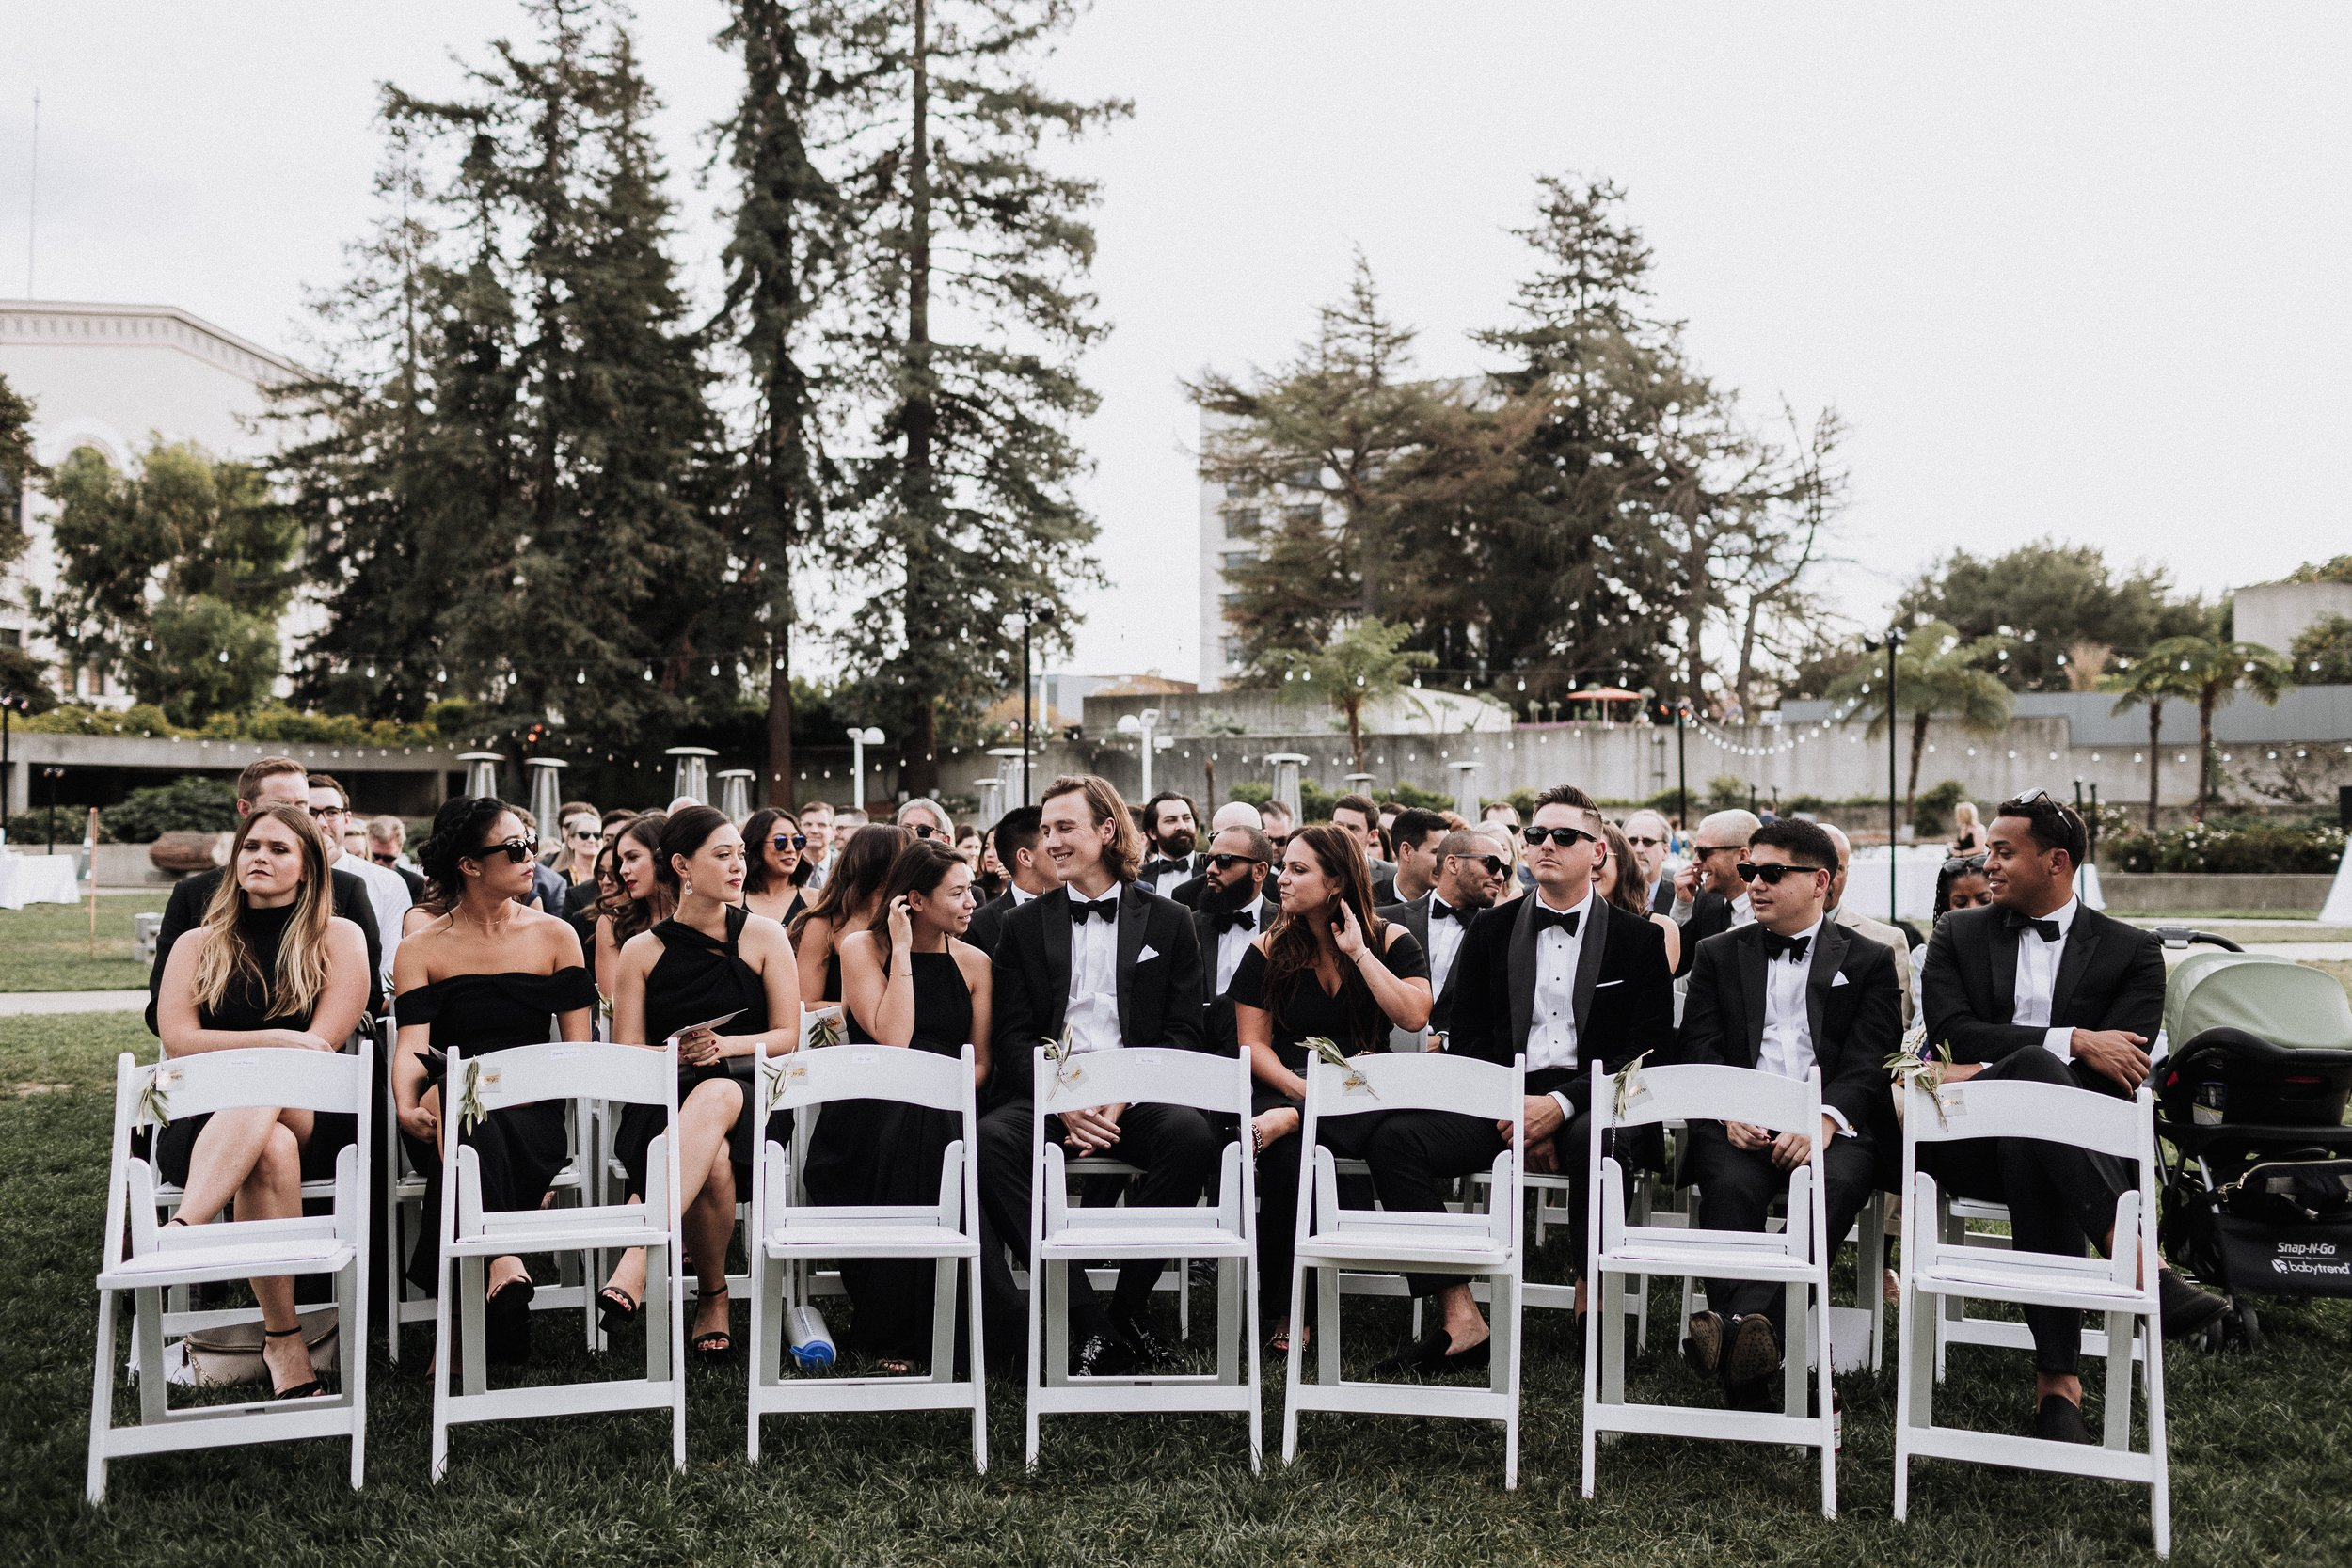 Seated Wedding Guests Saved Front Row Oakland Museum of California KLdc